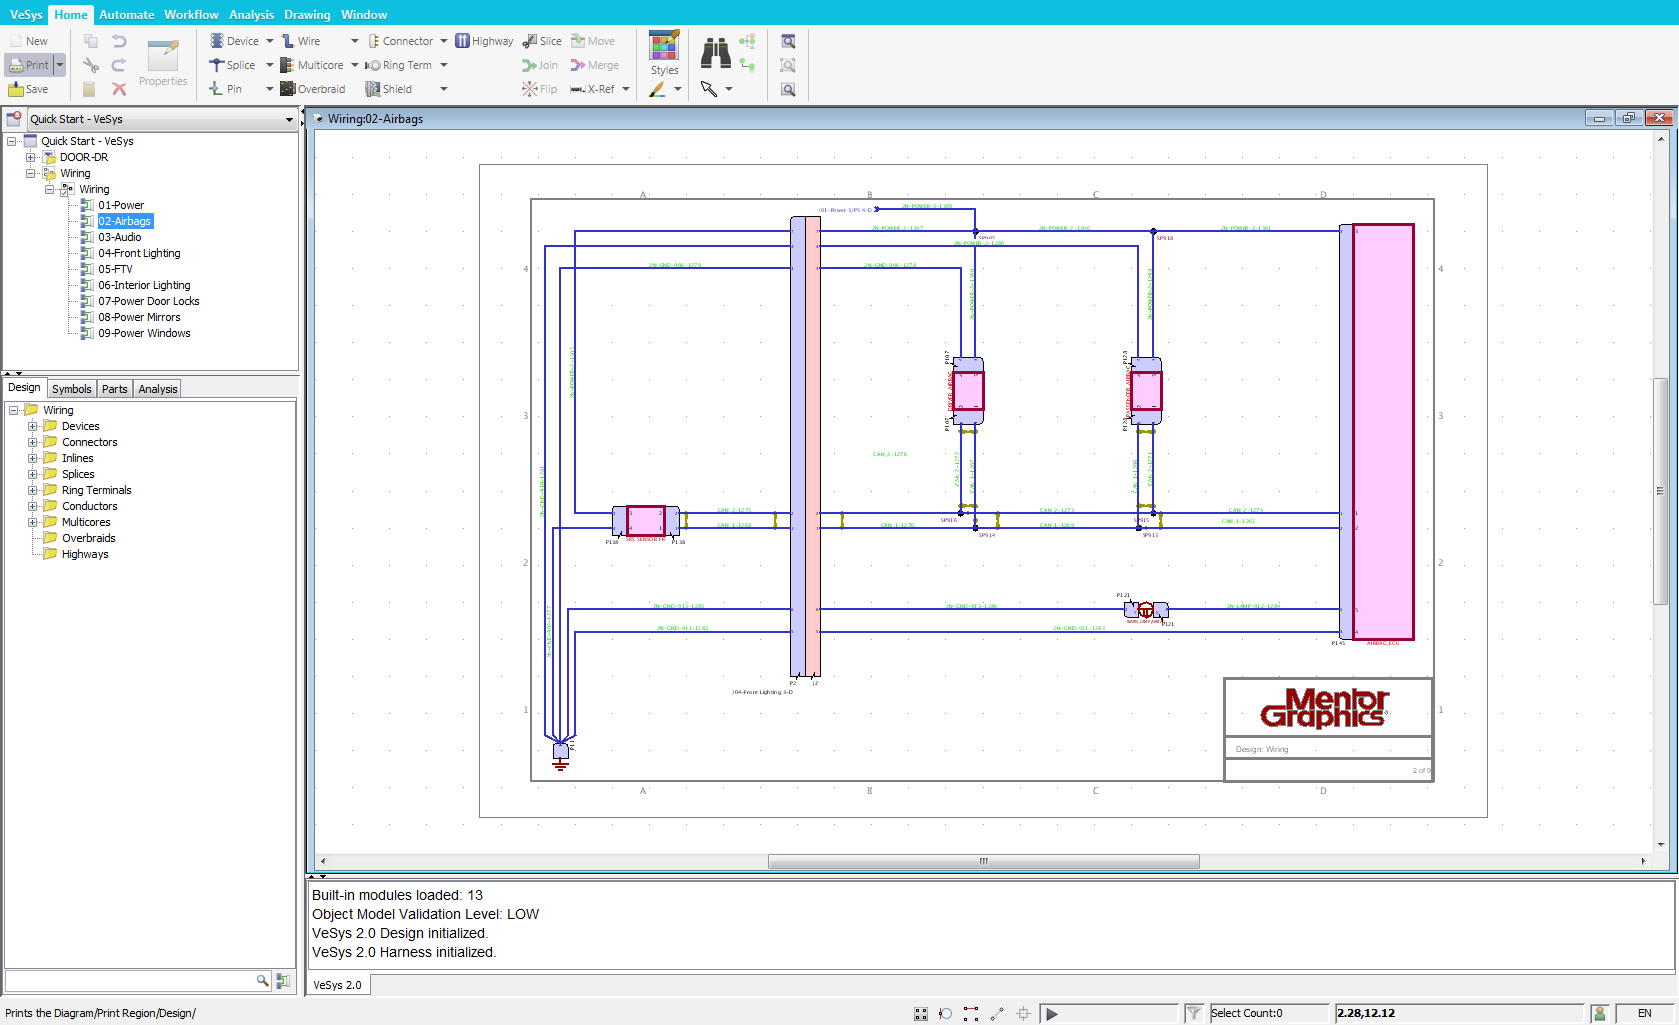 Vesys Design Mentor Graphics Electrical Symbols In Wiring Is Graphical Authoring Environment For Creating Vehicle Diagrams Via An Intuitive User Interface And Electrically Intelligent